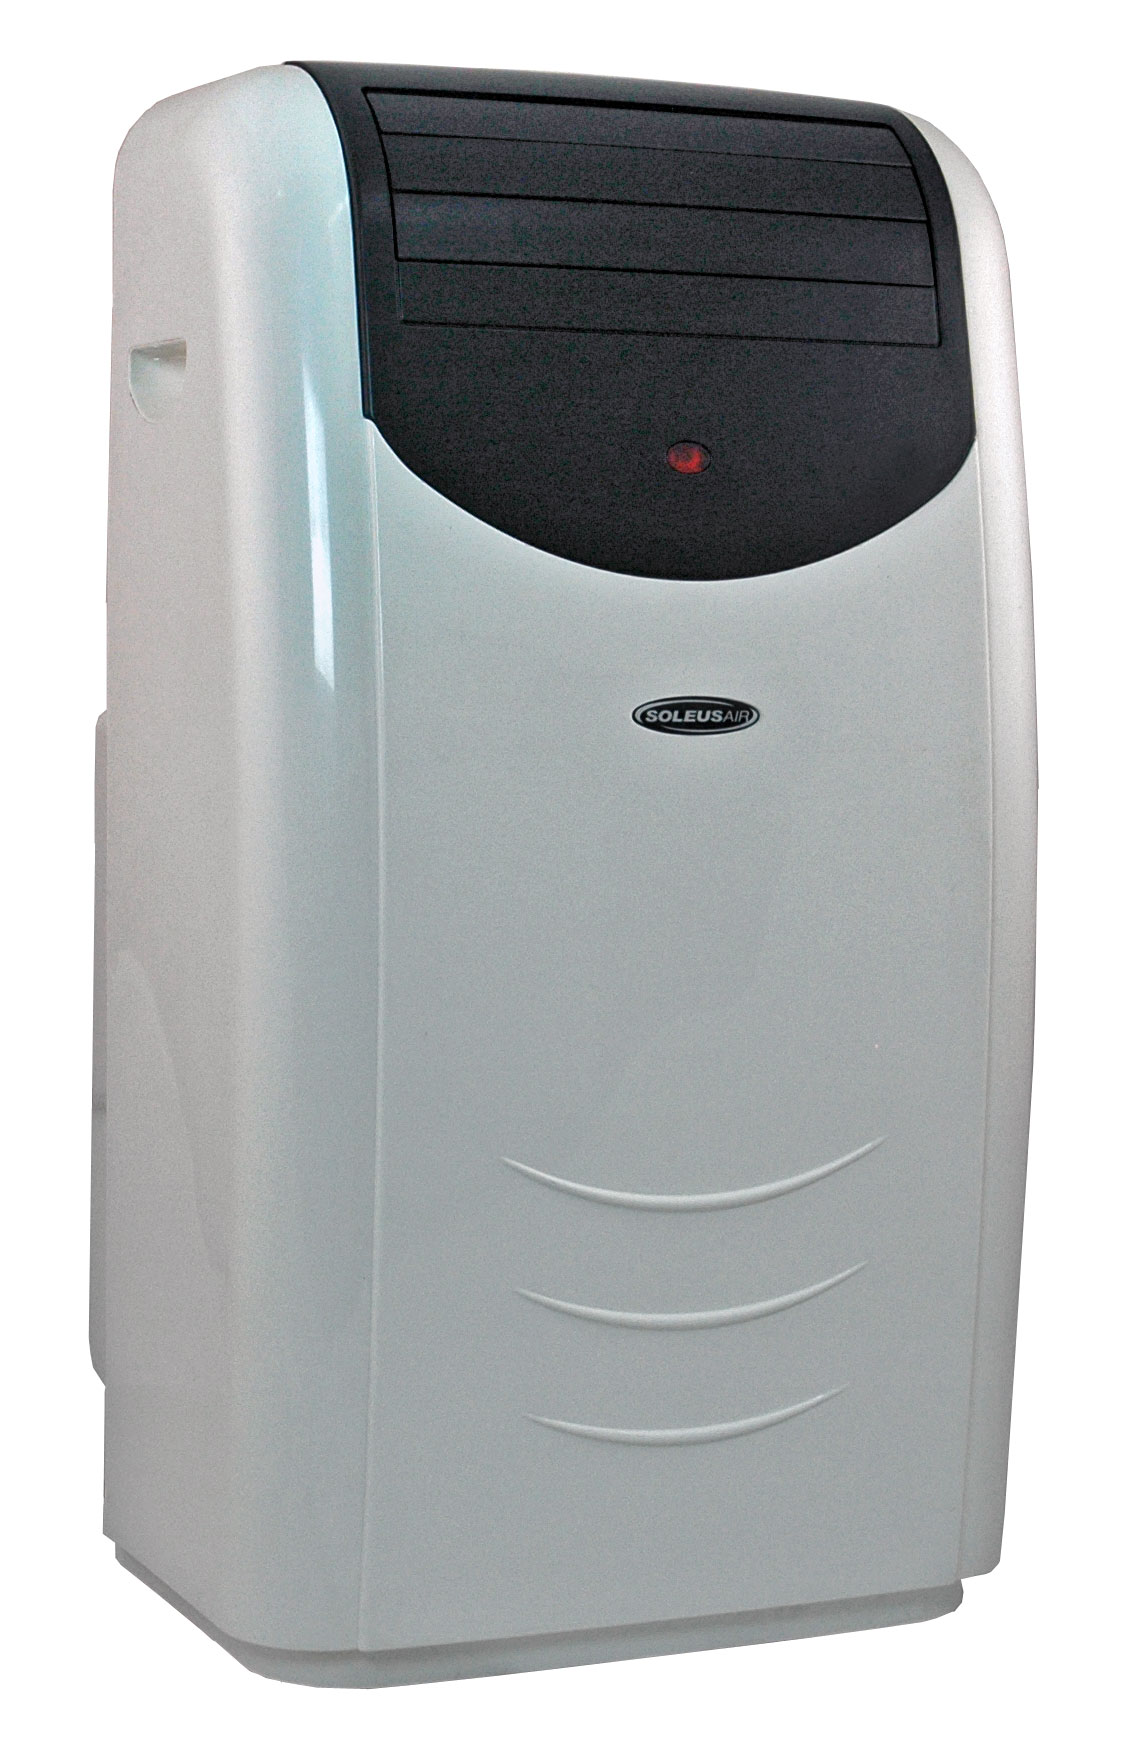 Delicieux Soleus LX 140 14,000 BTU Portable Evaporative Air Conditioner   Walmart.com